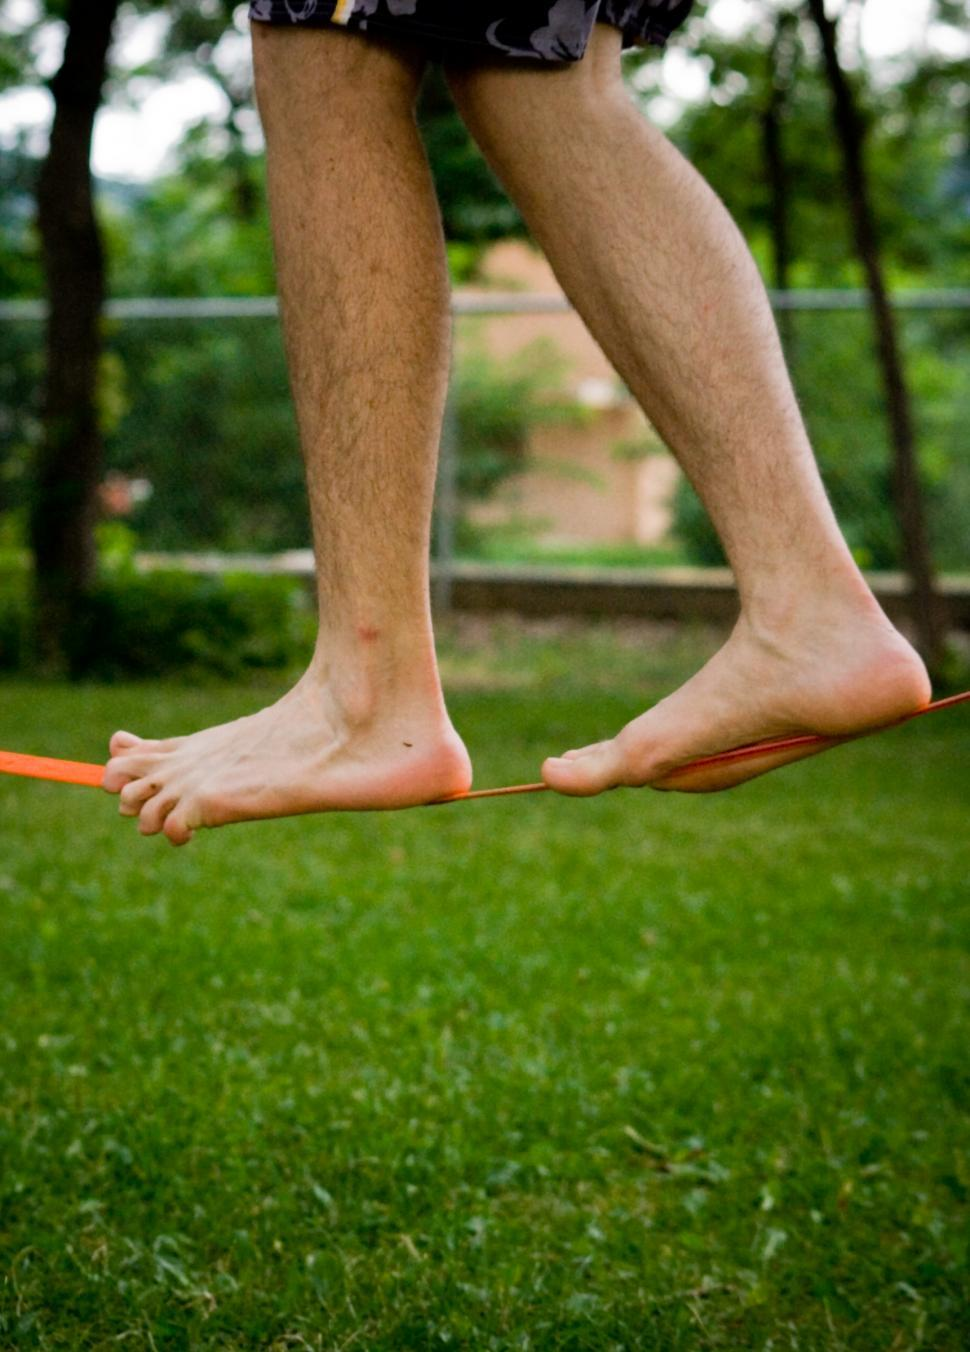 Download Free Stock HD Photo of The Importance of Feet Online